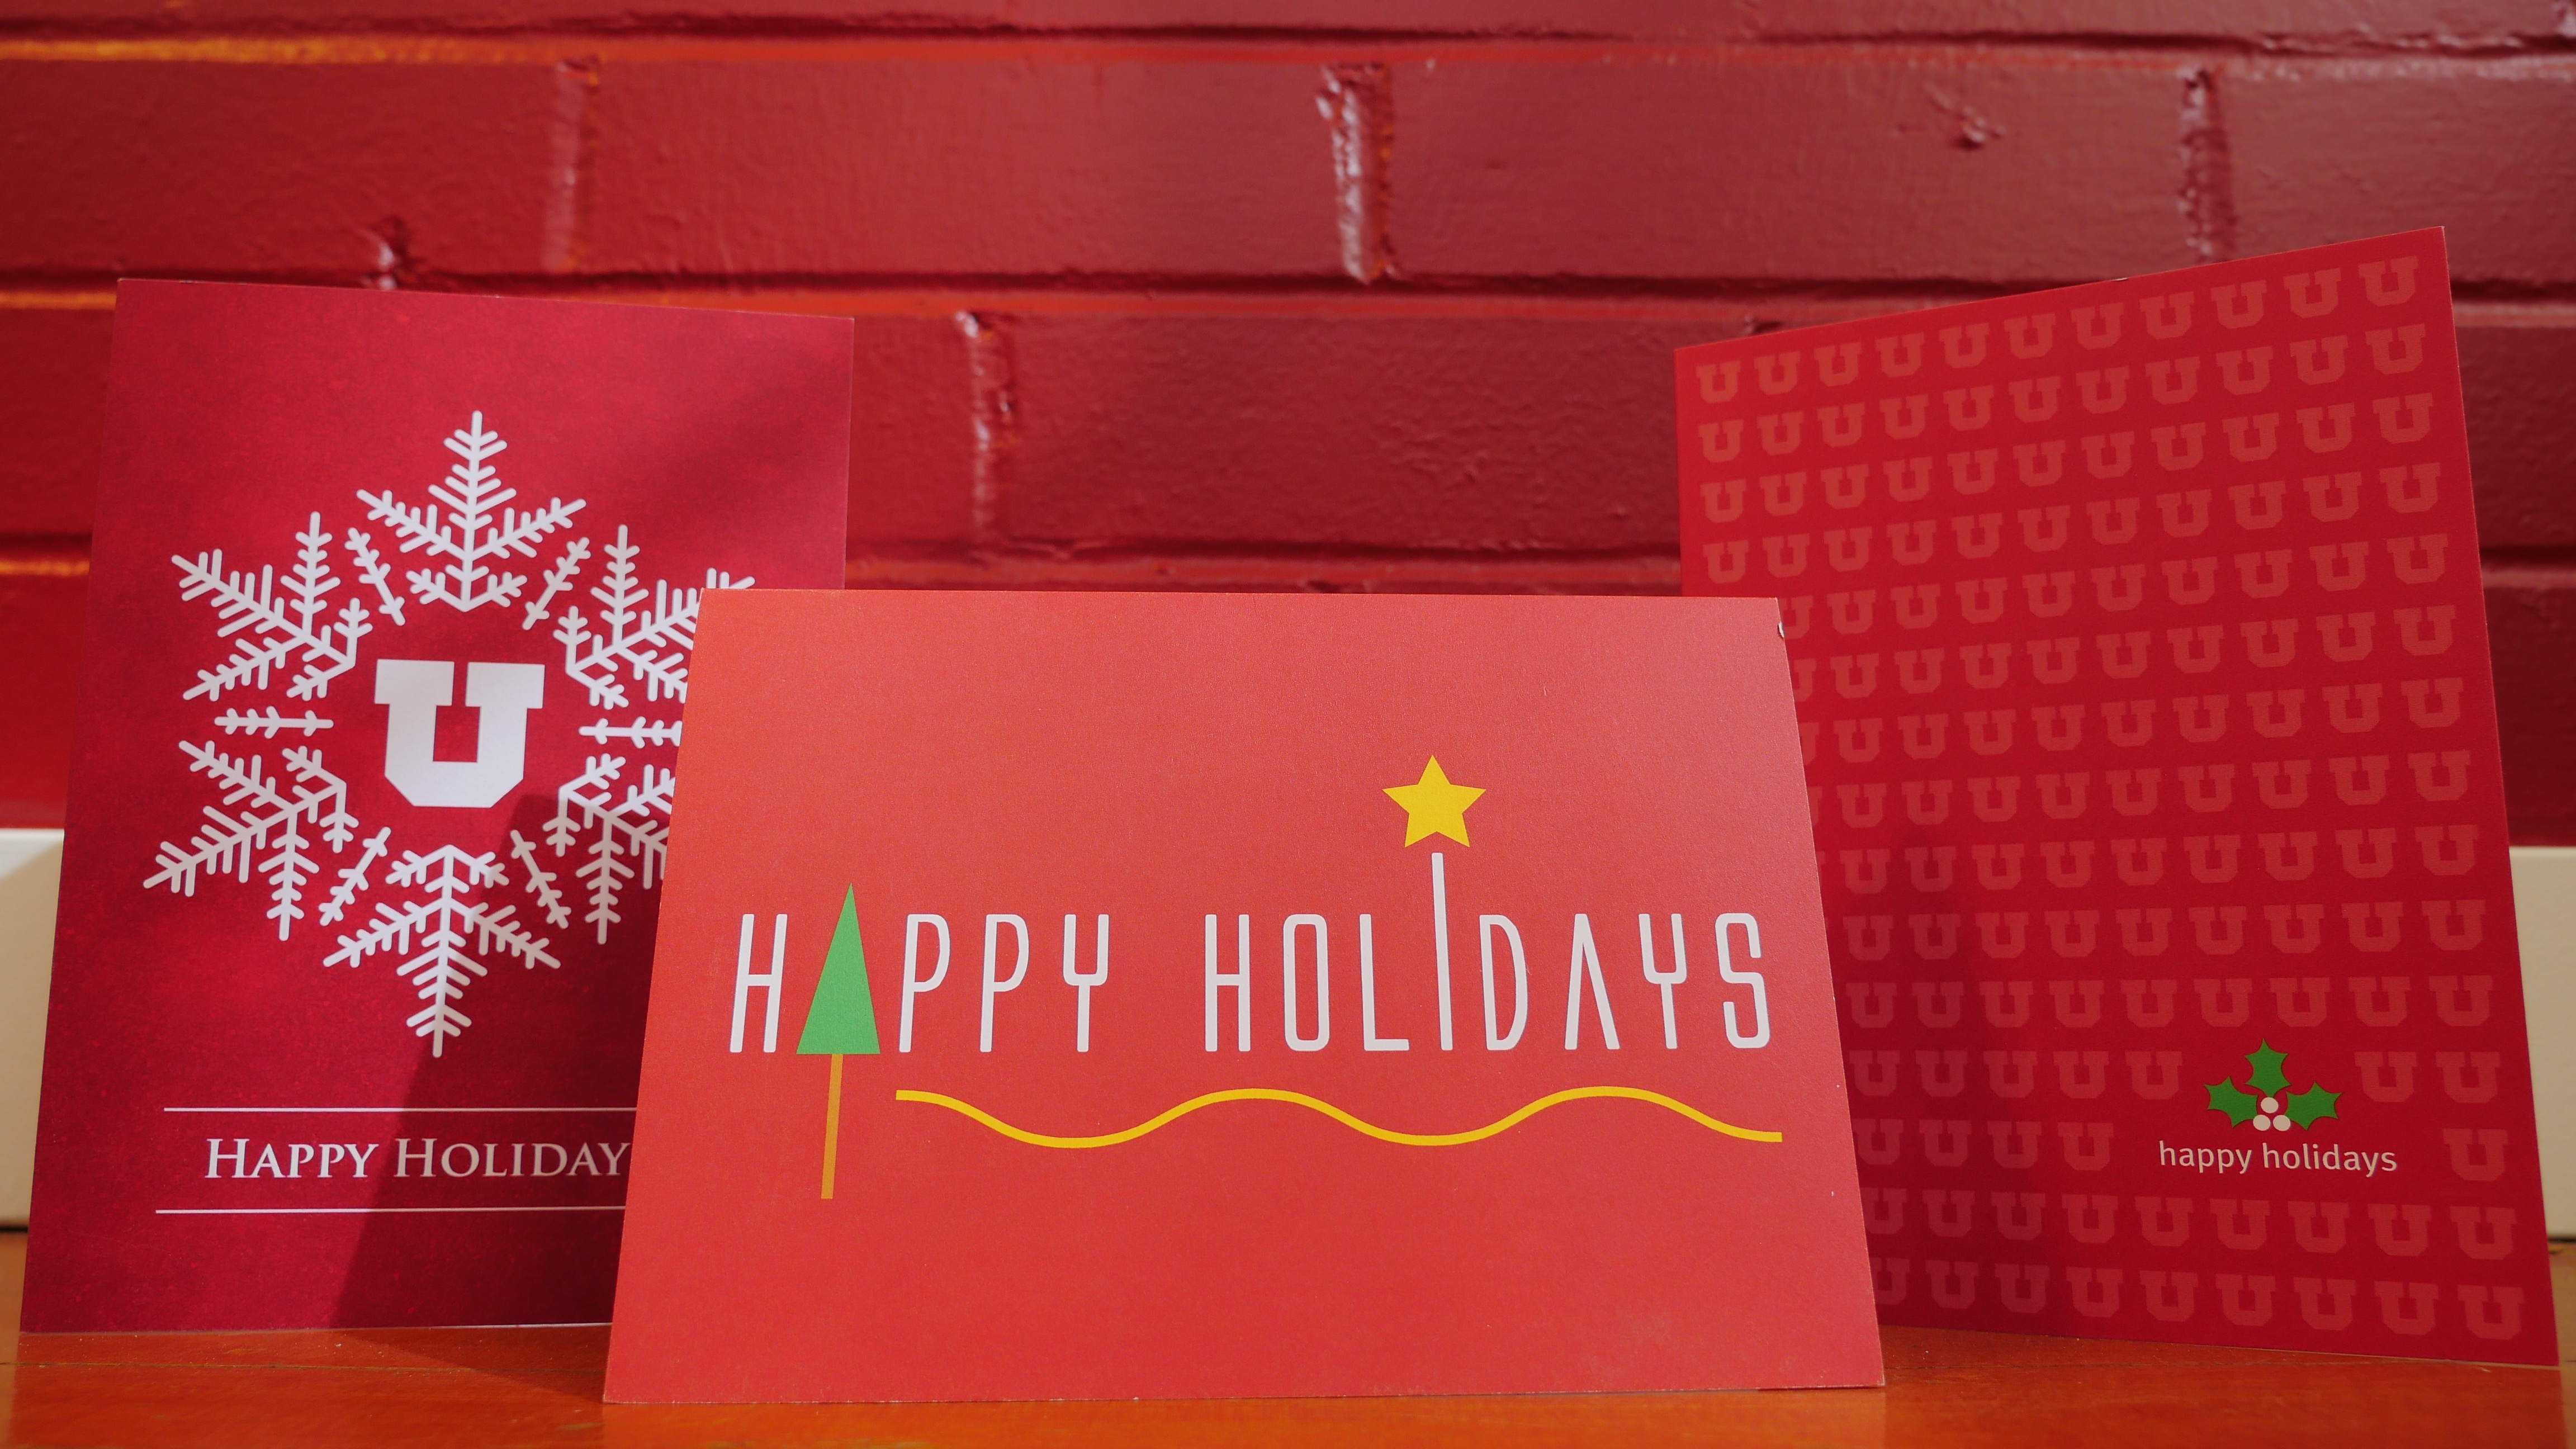 Get A Head Start On The Holiday Season By Ordering Your Greeting Cards From University Print Mail Services Conveniently Place Order Online And